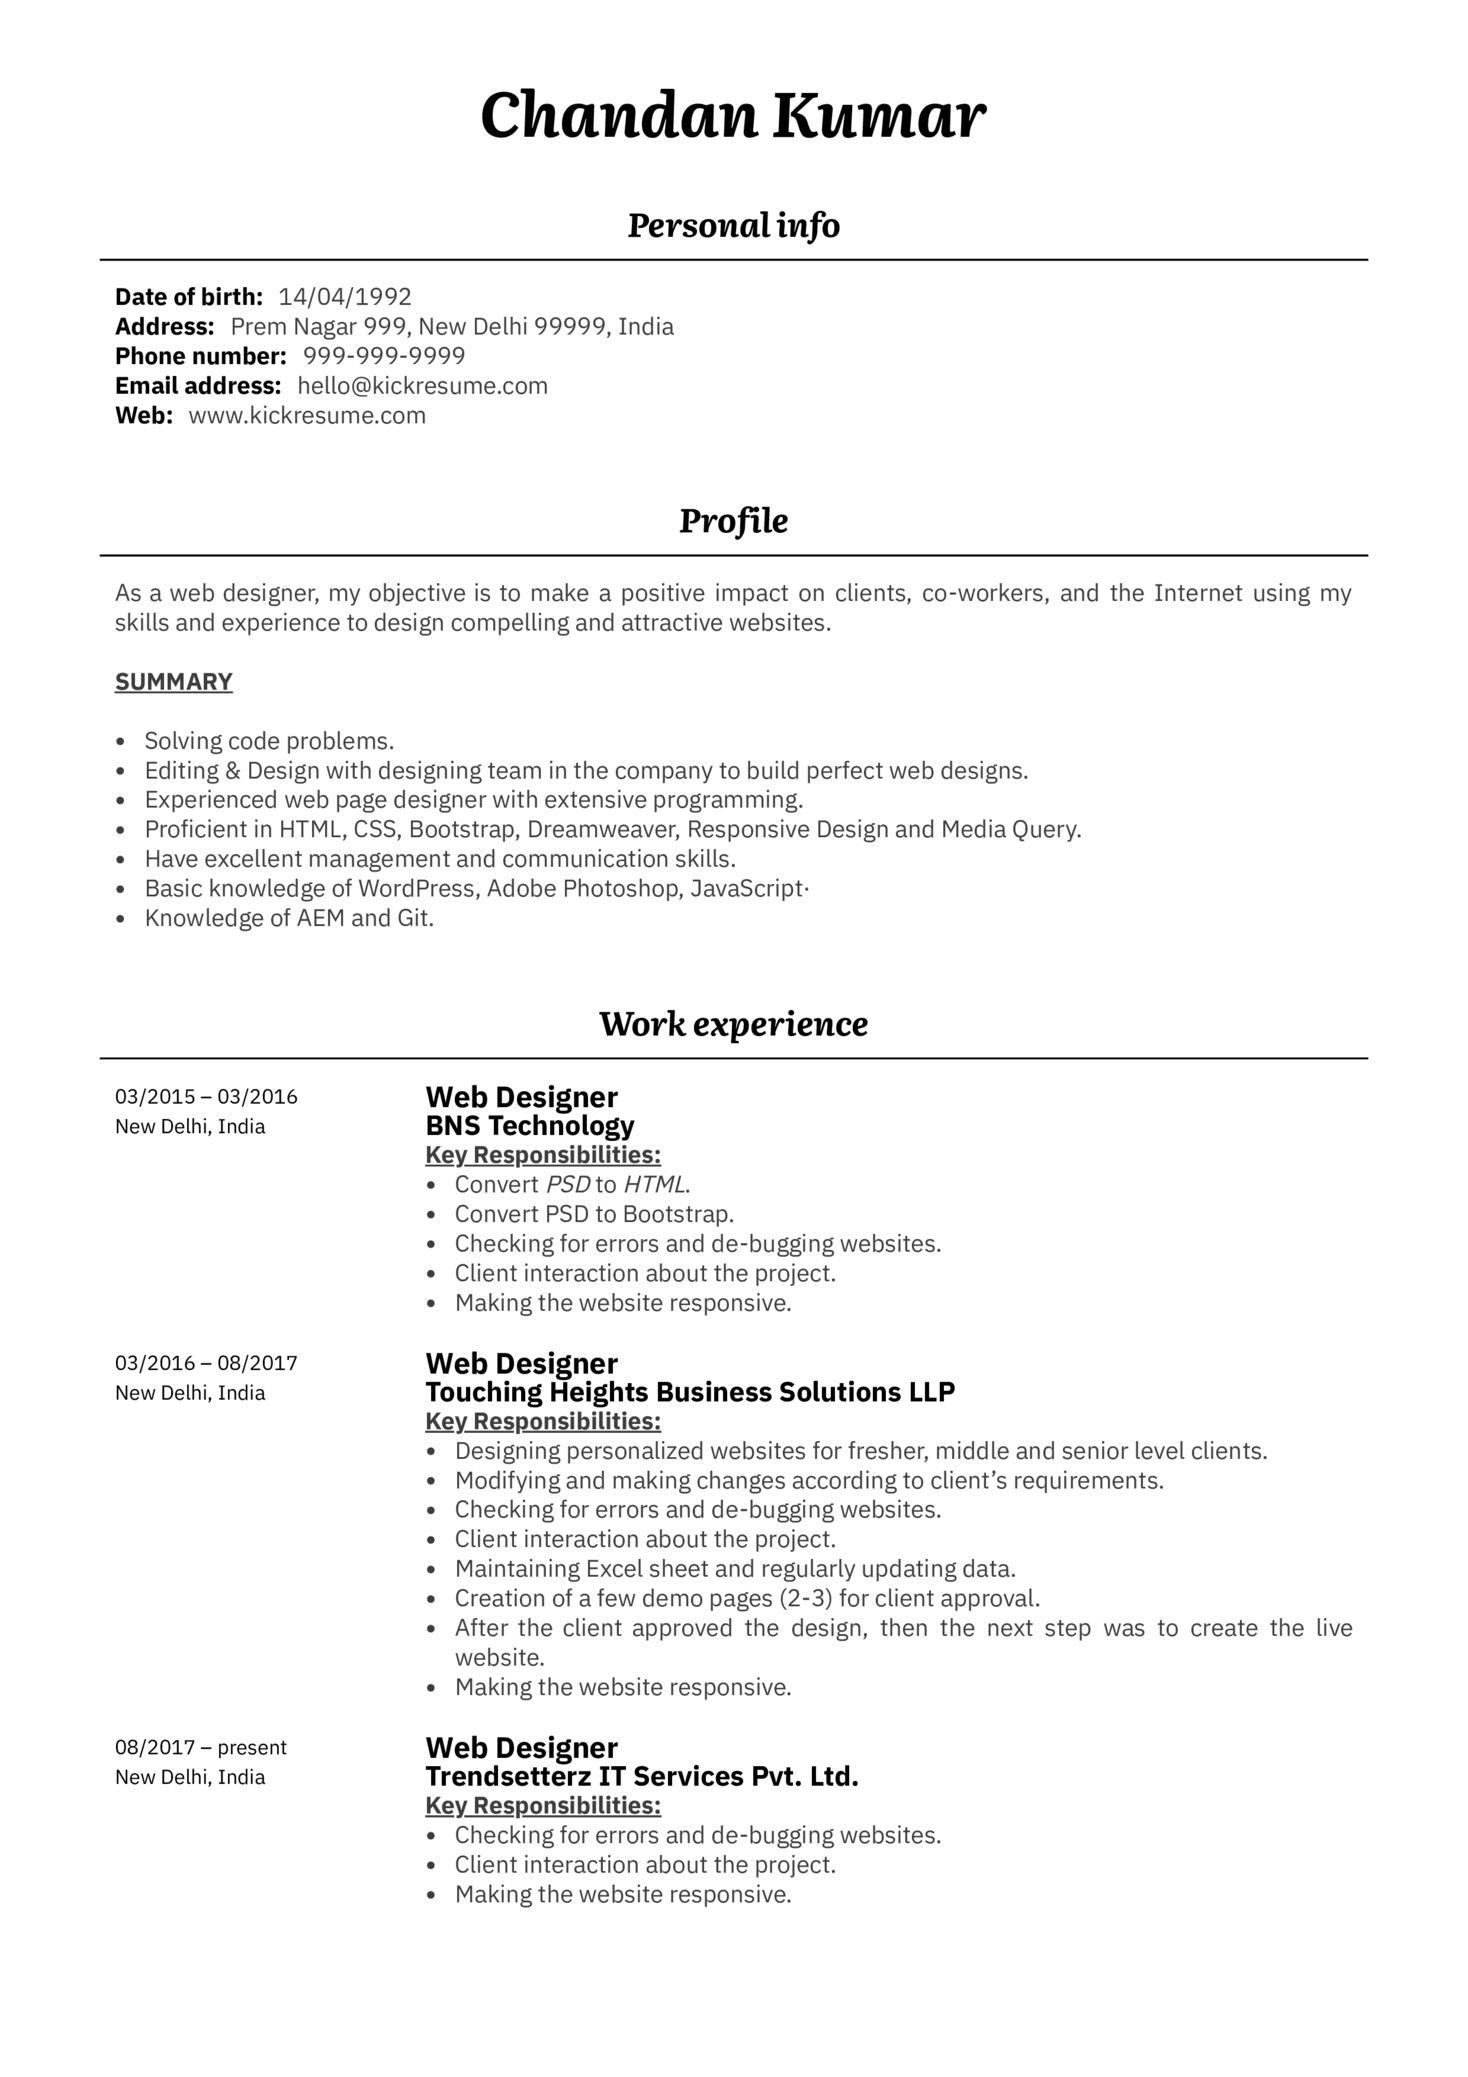 resume examples by real people  web designer at trendsetterz resume example